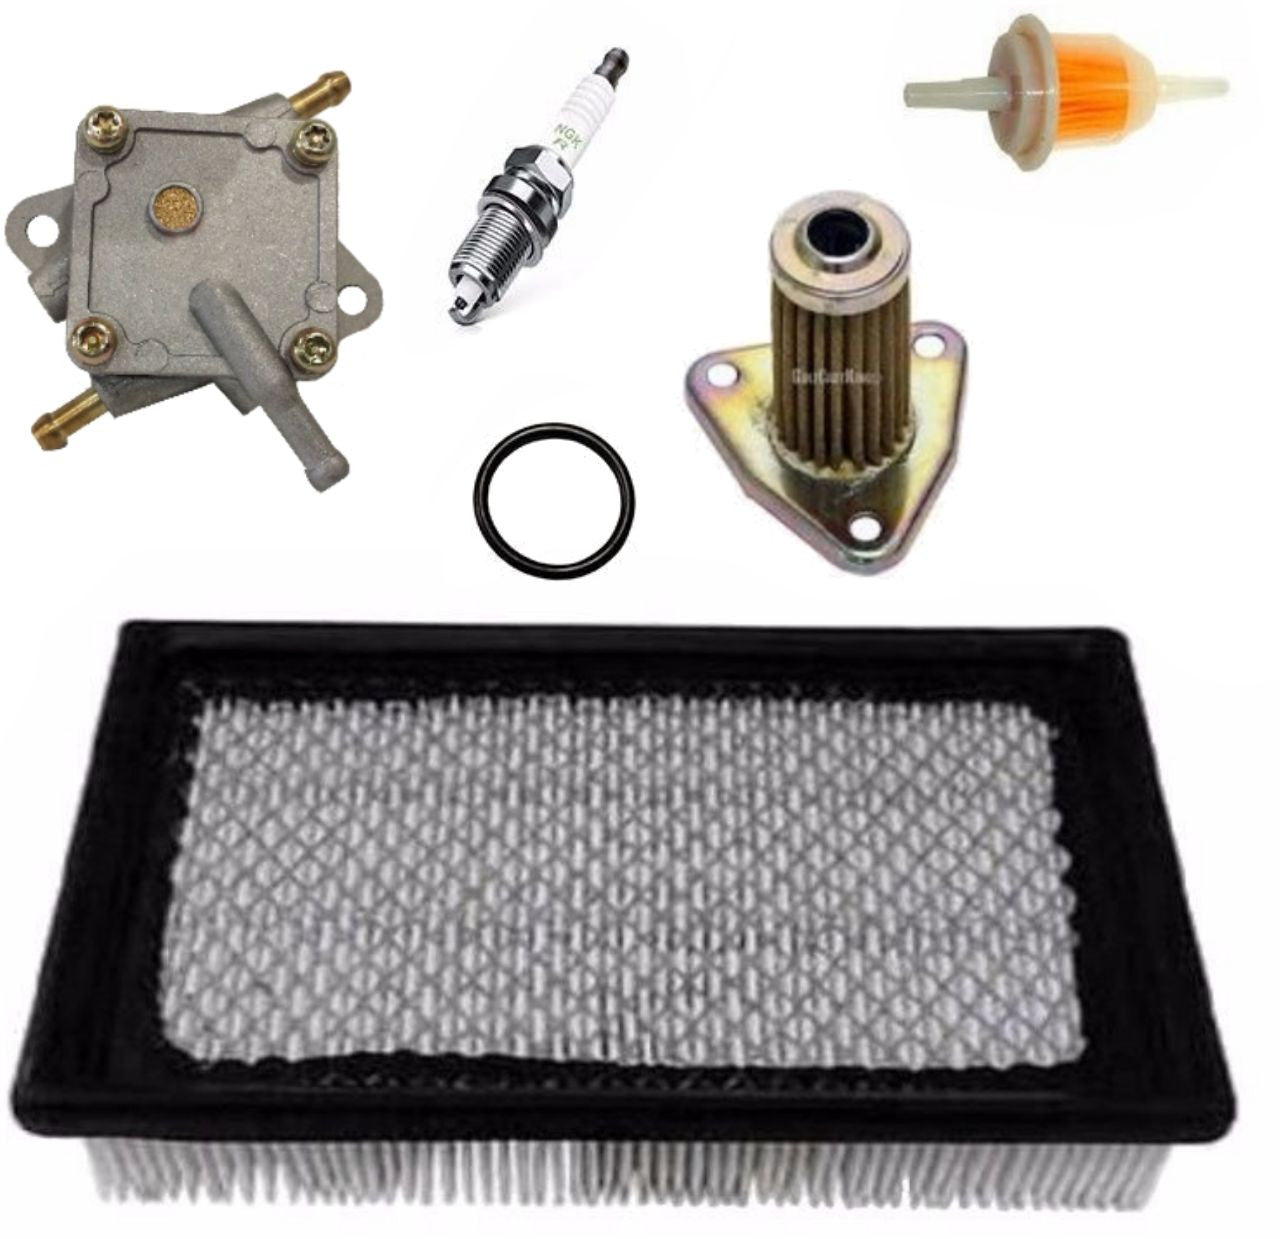 E-Z-GO Marathon Golf Cart Tune Up Kit 1991-1994 4 Cycle Gas Fuel Pump